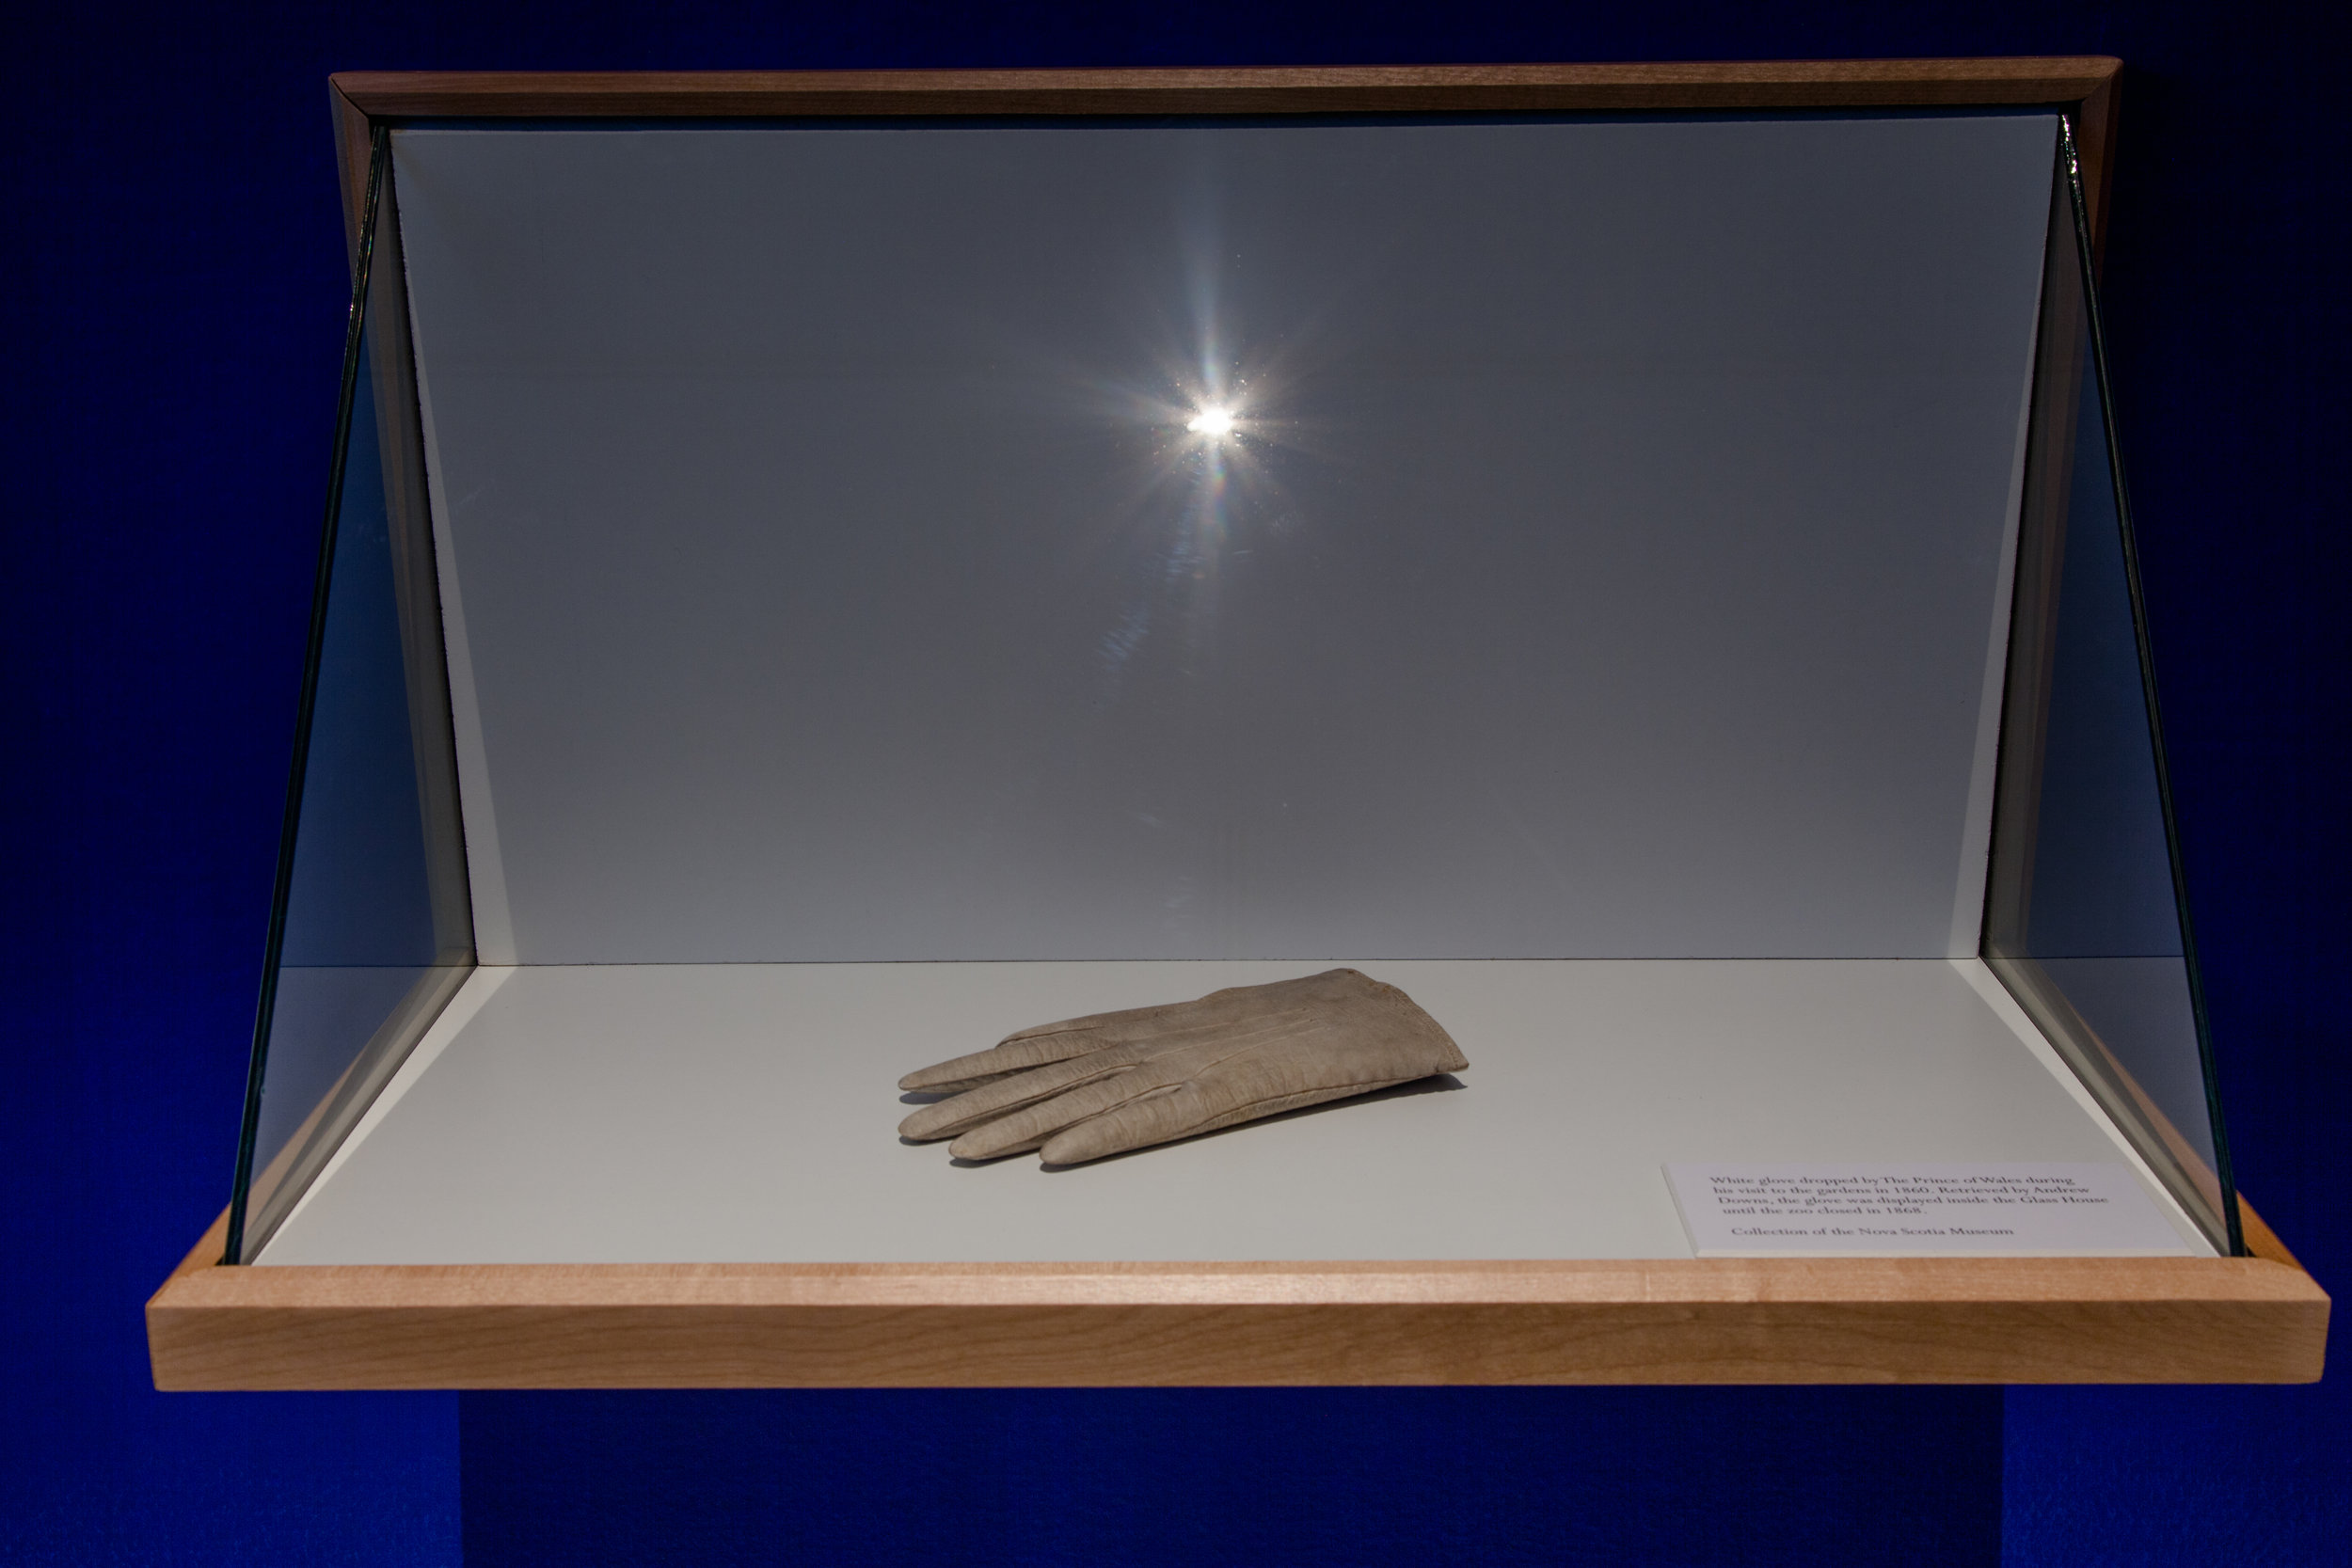 White glove dropped by The Prince of Wales during his visit to the gardens in 1860. Retrieved by Andrew Downs, the glove was displayed inside the  Glass House  until the zoo closed in 1868. (Collection of the Nova Scotia Museum)